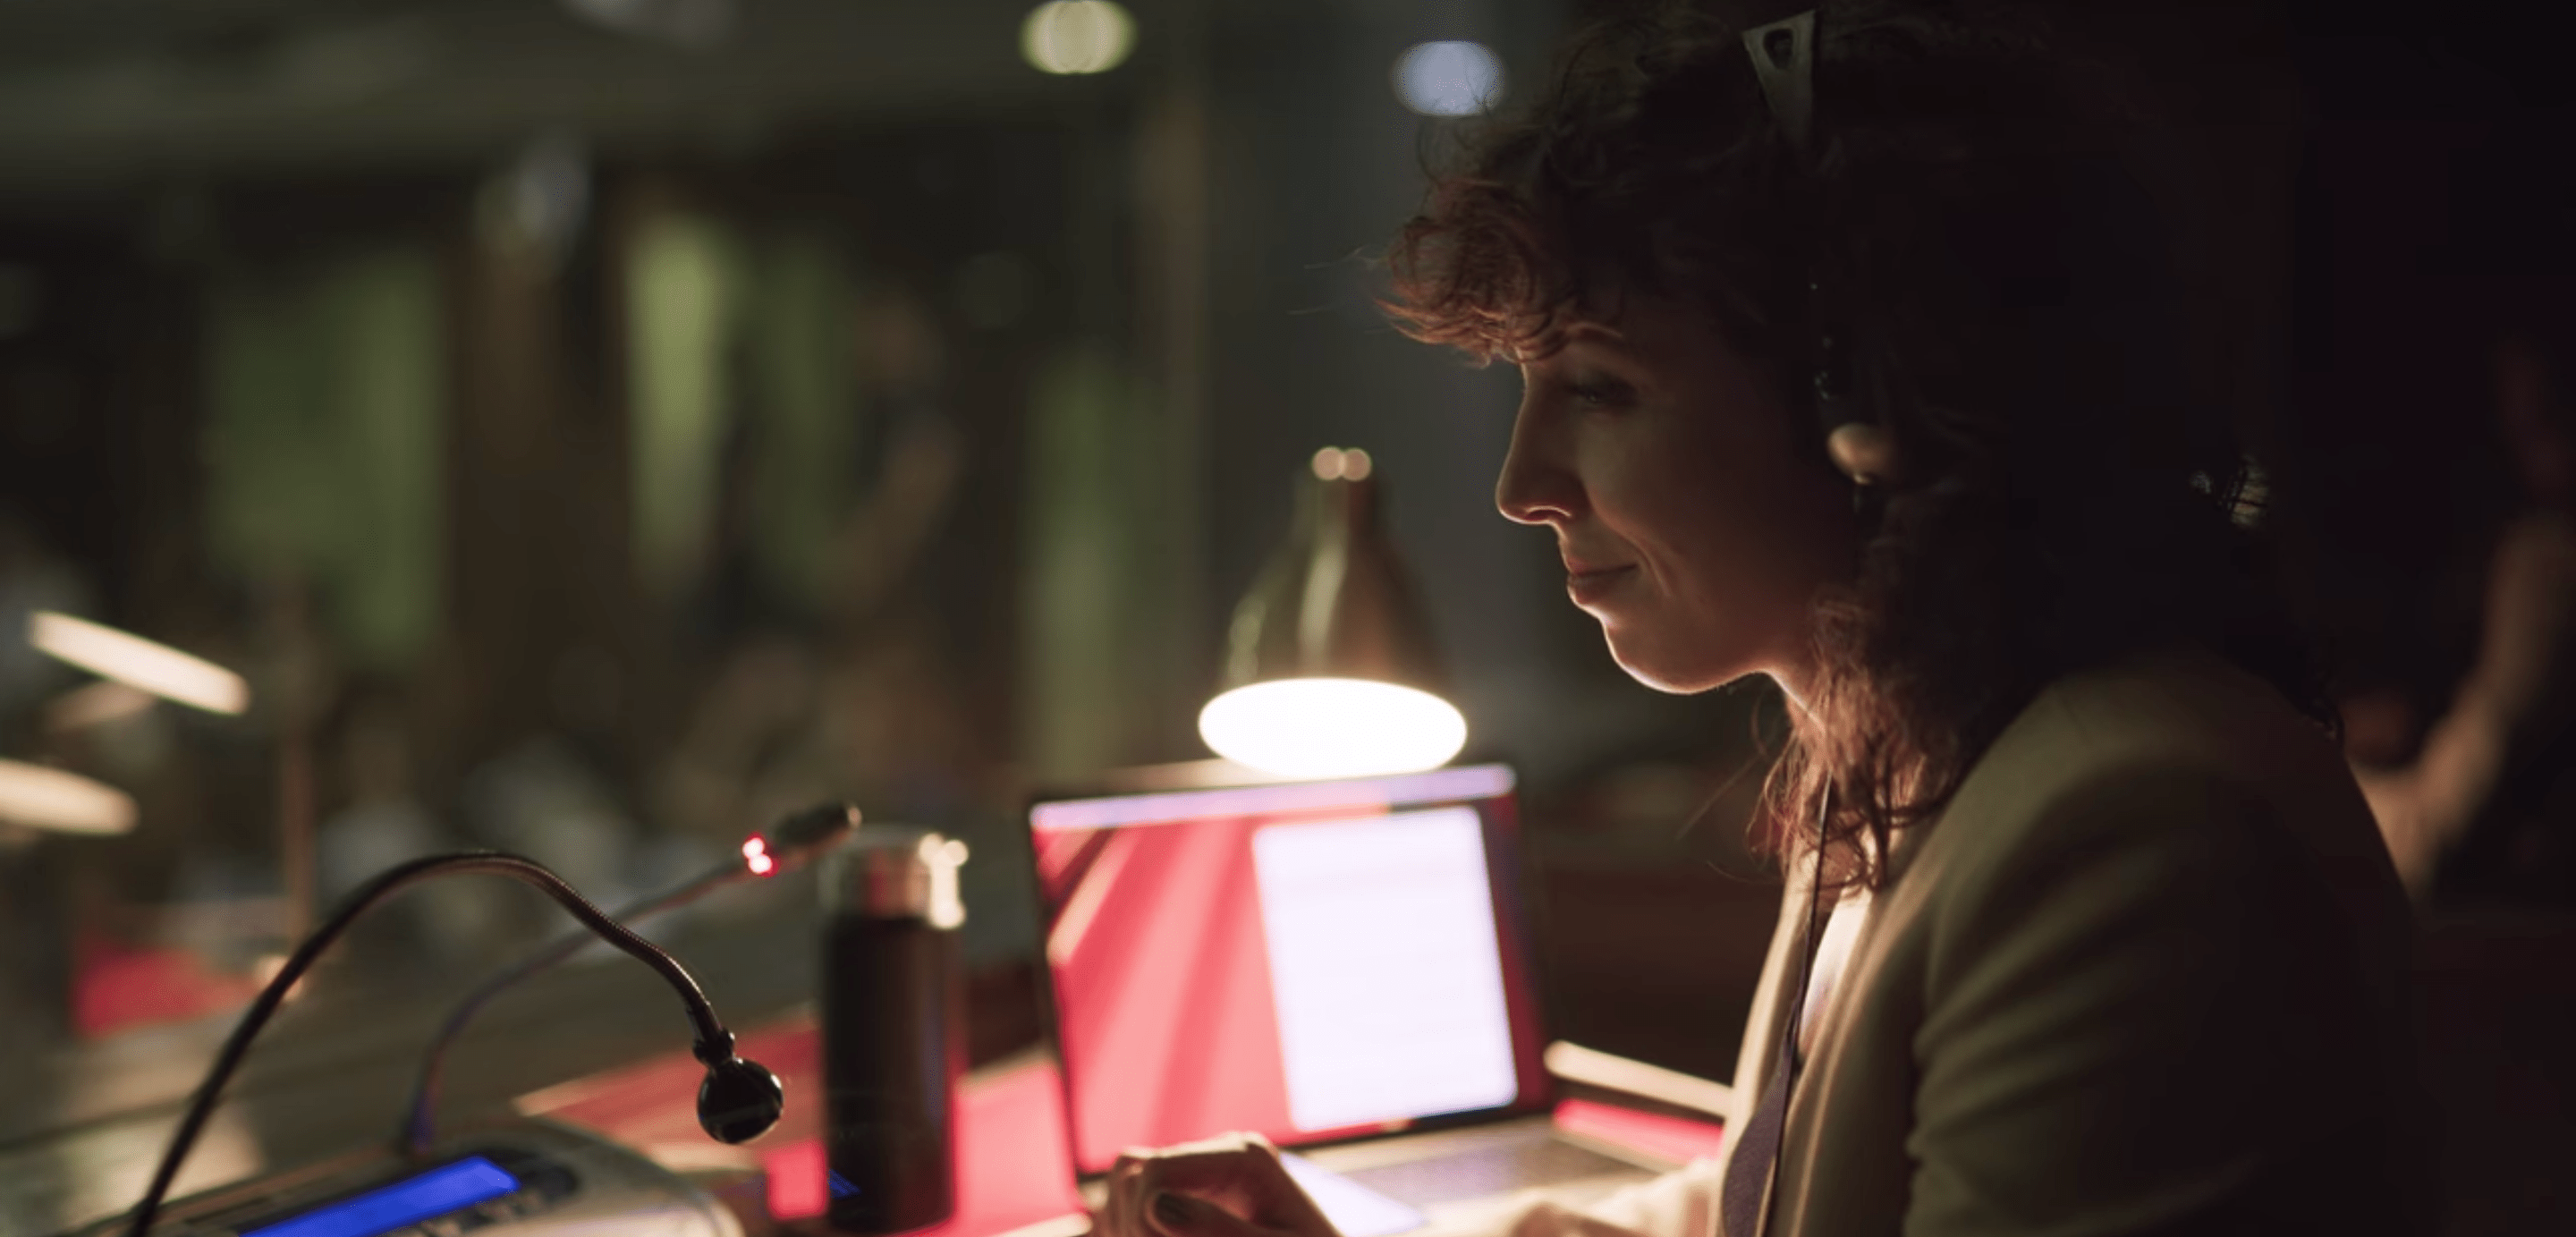 Lola, a white woman with dark, loosely curly hair, sits in an interpreter's booth wearing headphones.